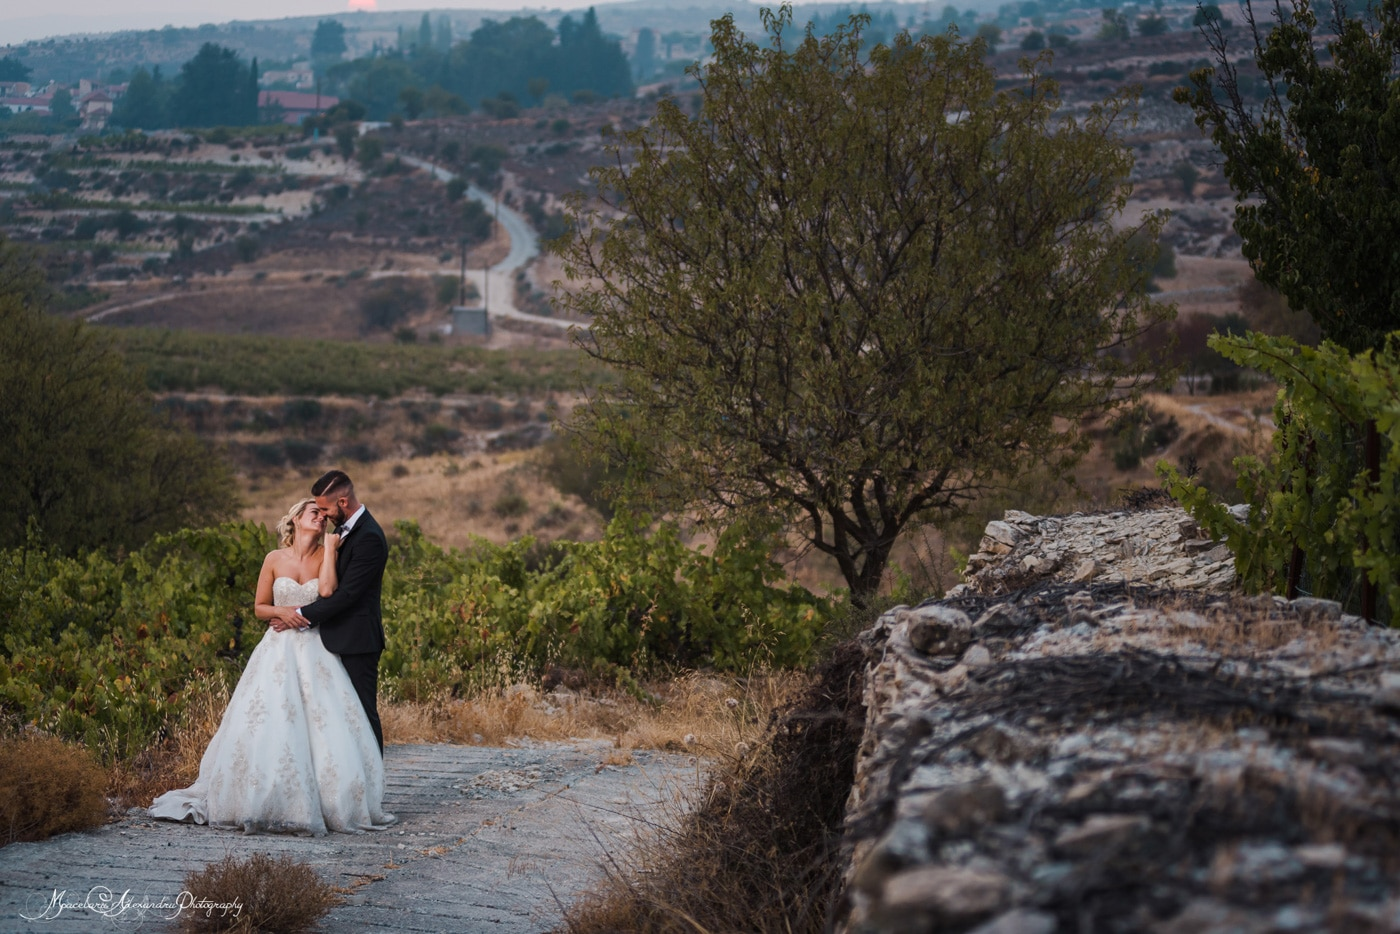 Great wedding photography in Cyprus